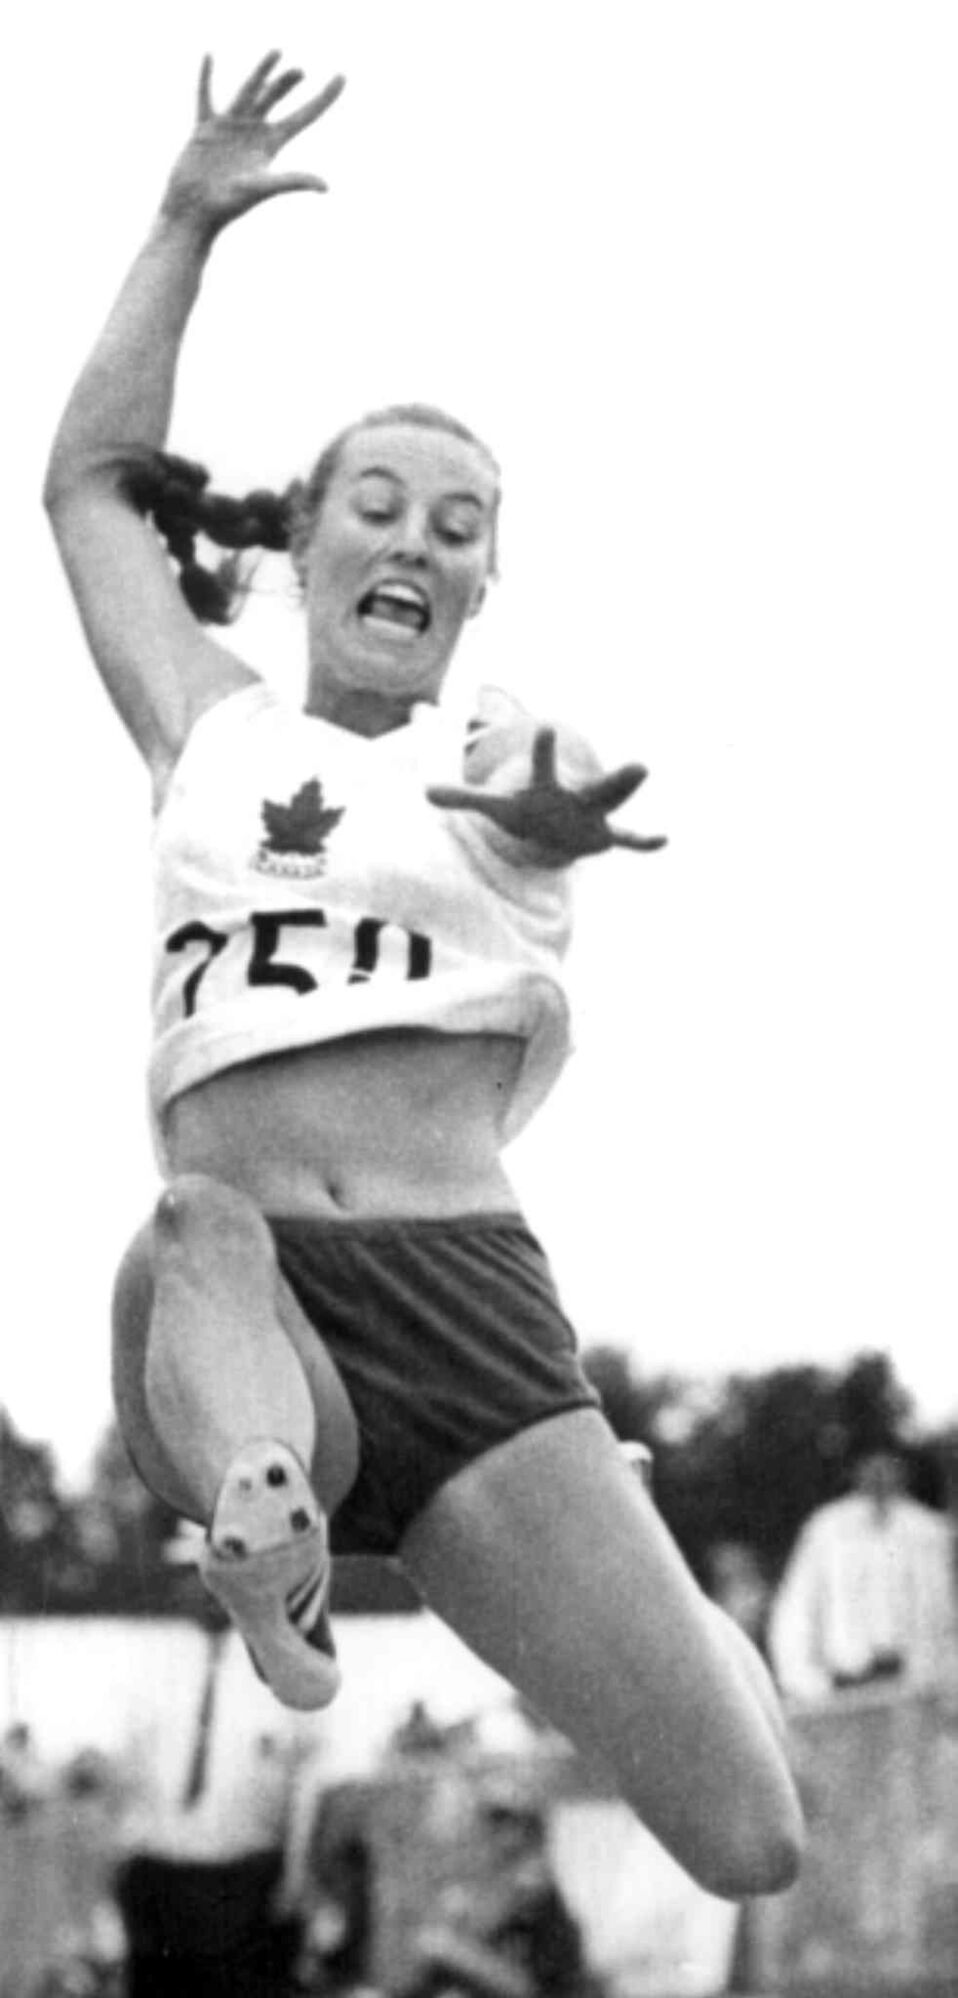 Toronto's Jenny Meldrum leaps to eighth place in the long jump. CP photo. (The Canadian Press Files)